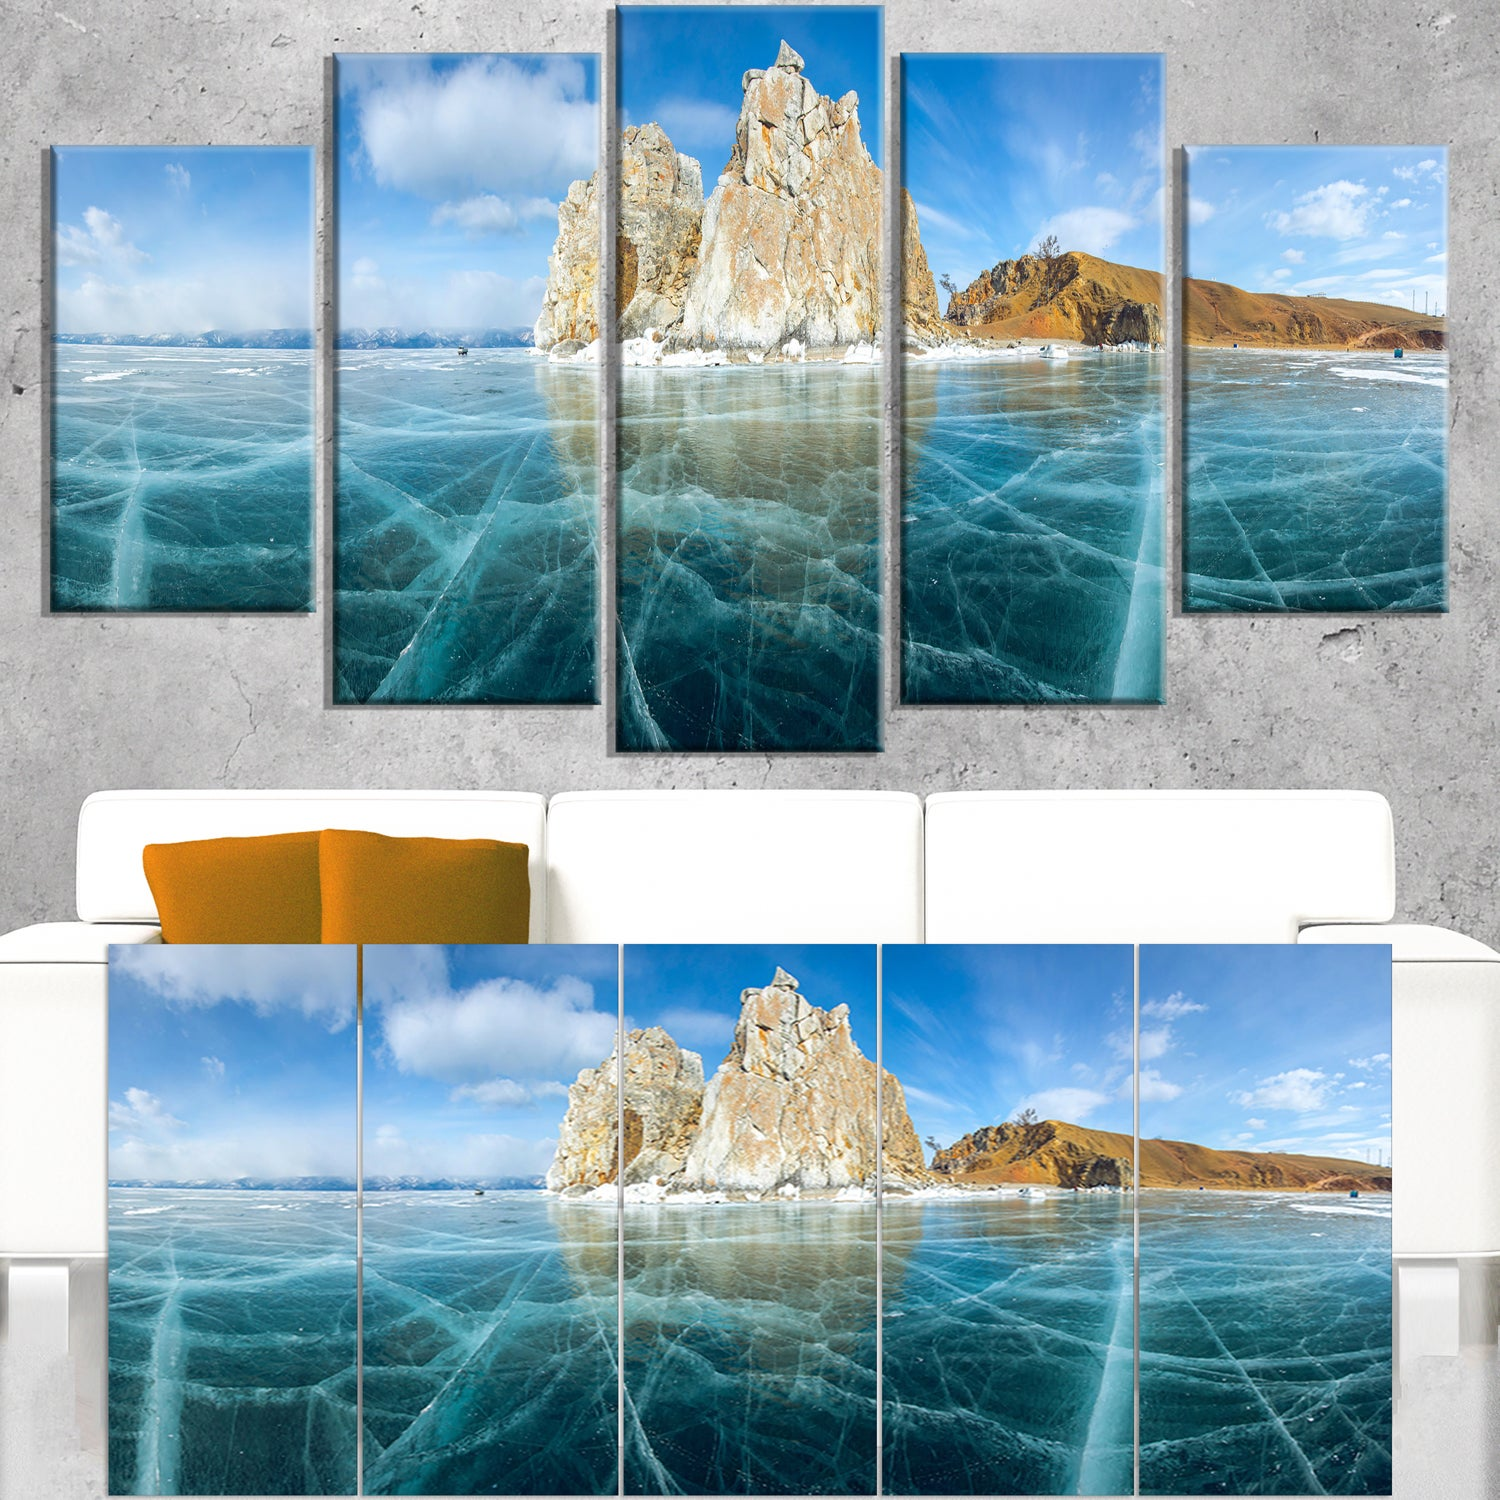 Lake Baikal Ice And Rocks Panorama Large Seascape Art Canvas Print Blue Overstock 12305589